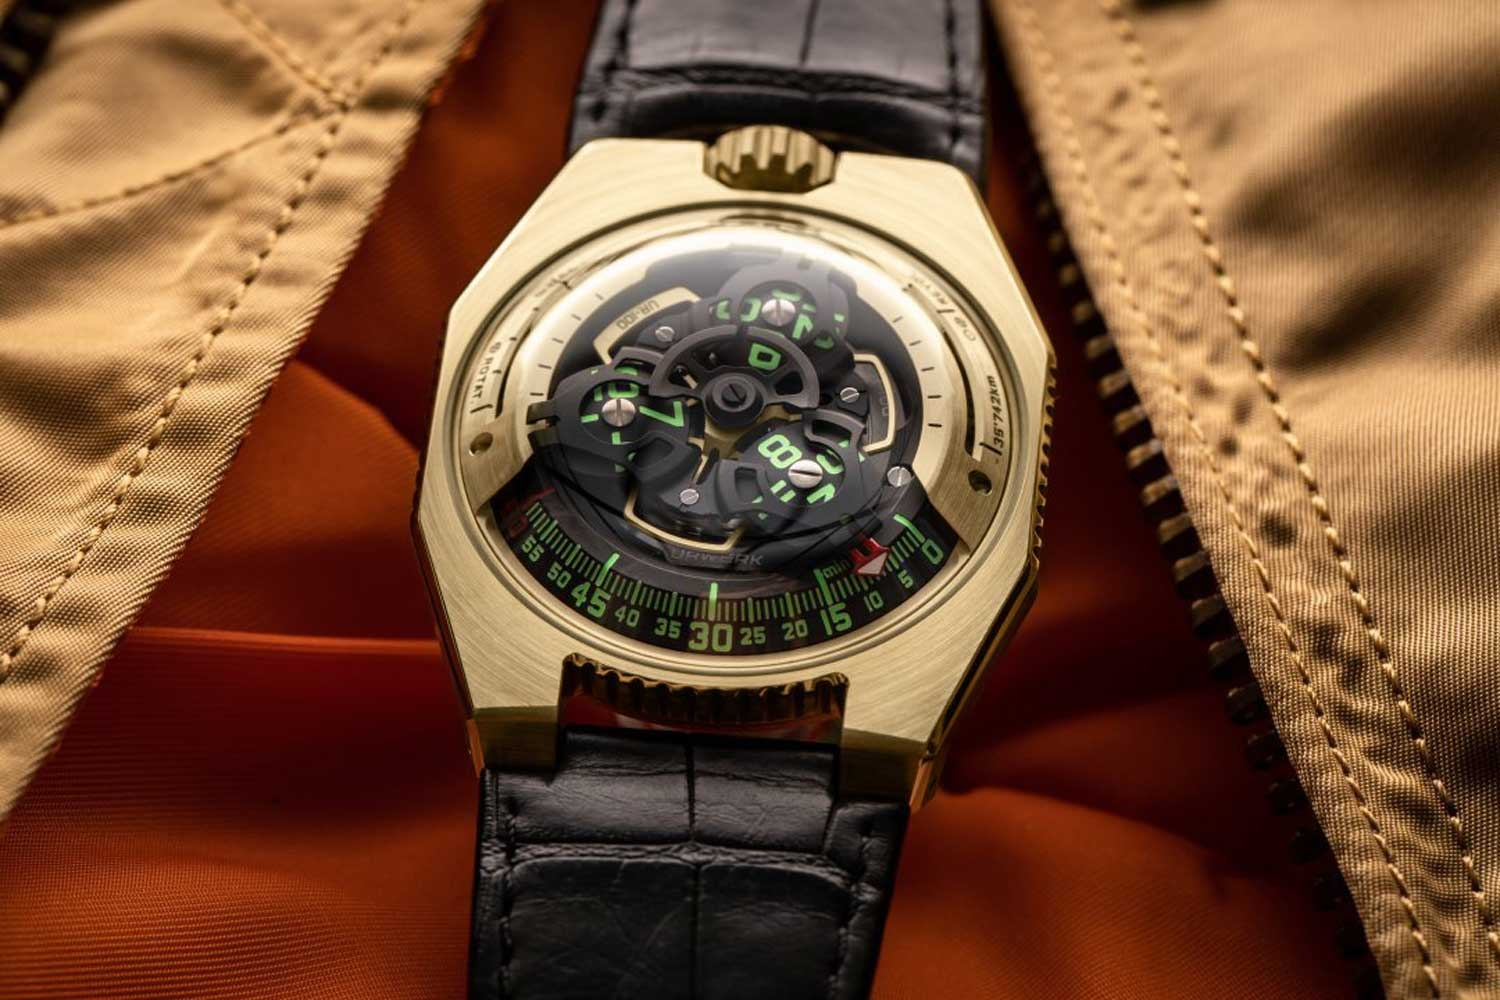 The URWERK UR-100 Gold is the latest edition of this series, in 18K 2N gold